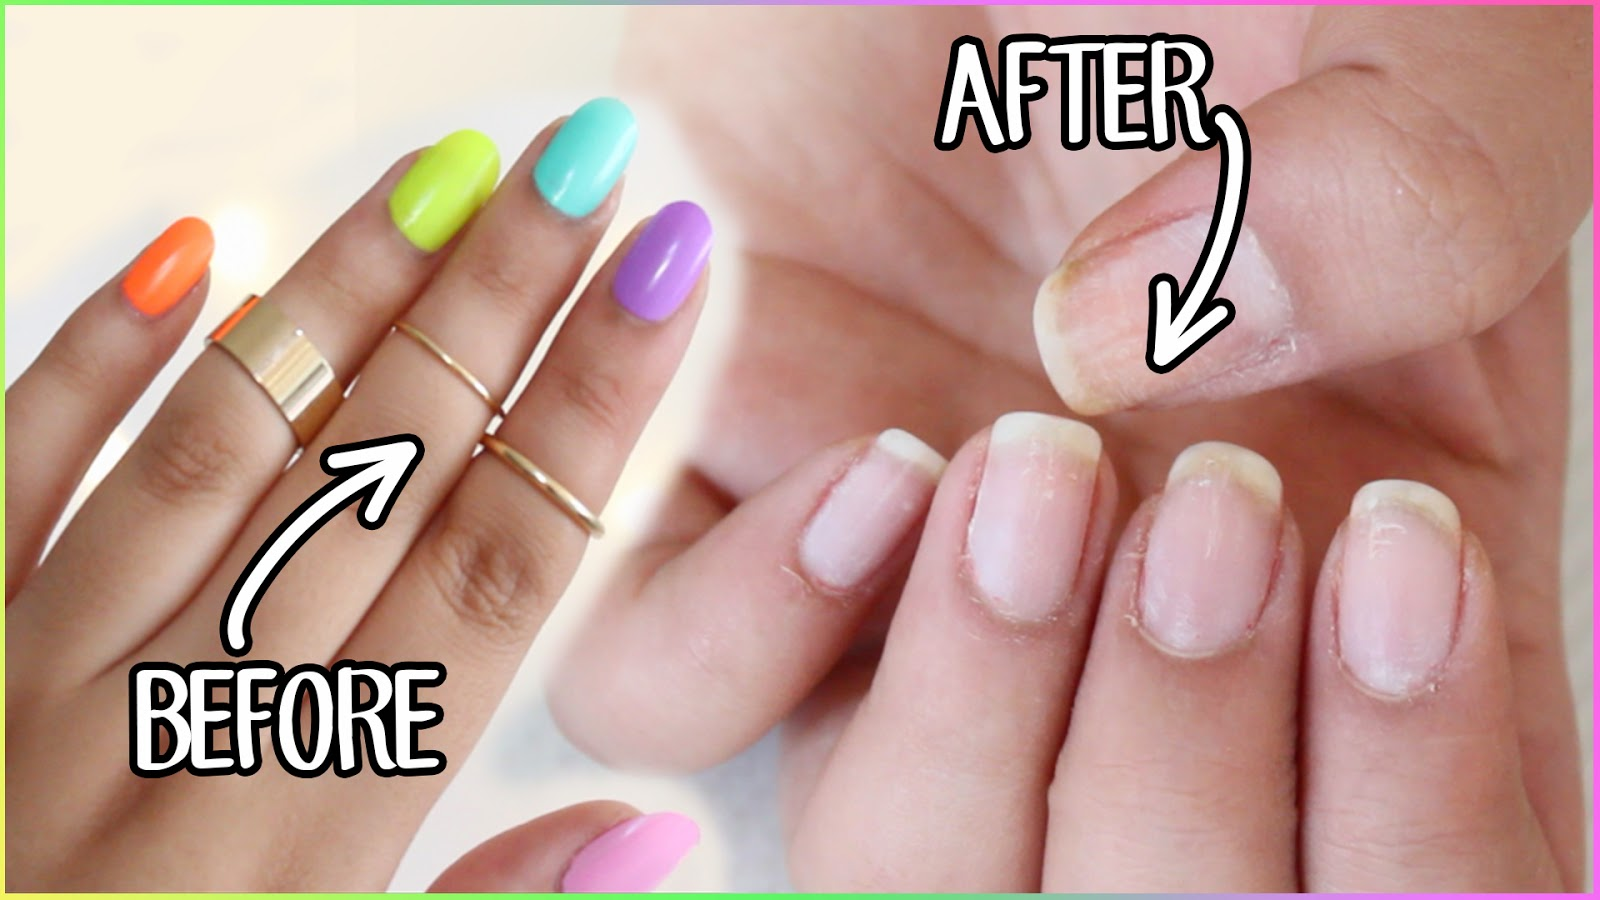 Hellomaphie: HOW TO REMOVE FAKE NAILS